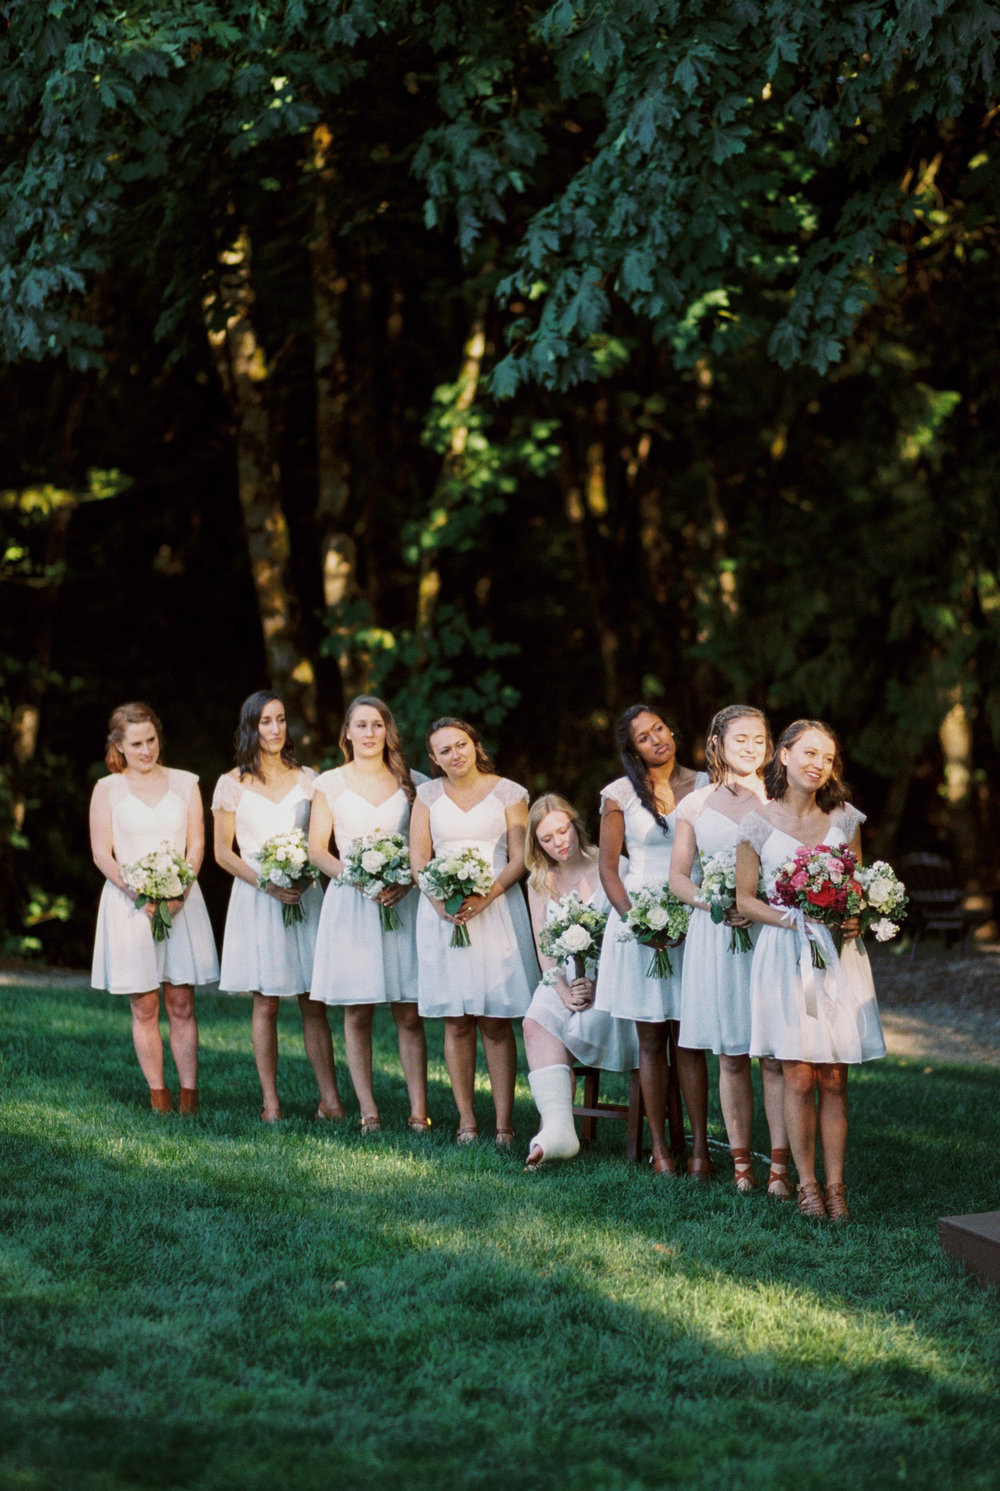 Bridalbliss.com | Portland Wedding | Oregon Event Planning and Design | Ivy + Gold Photography